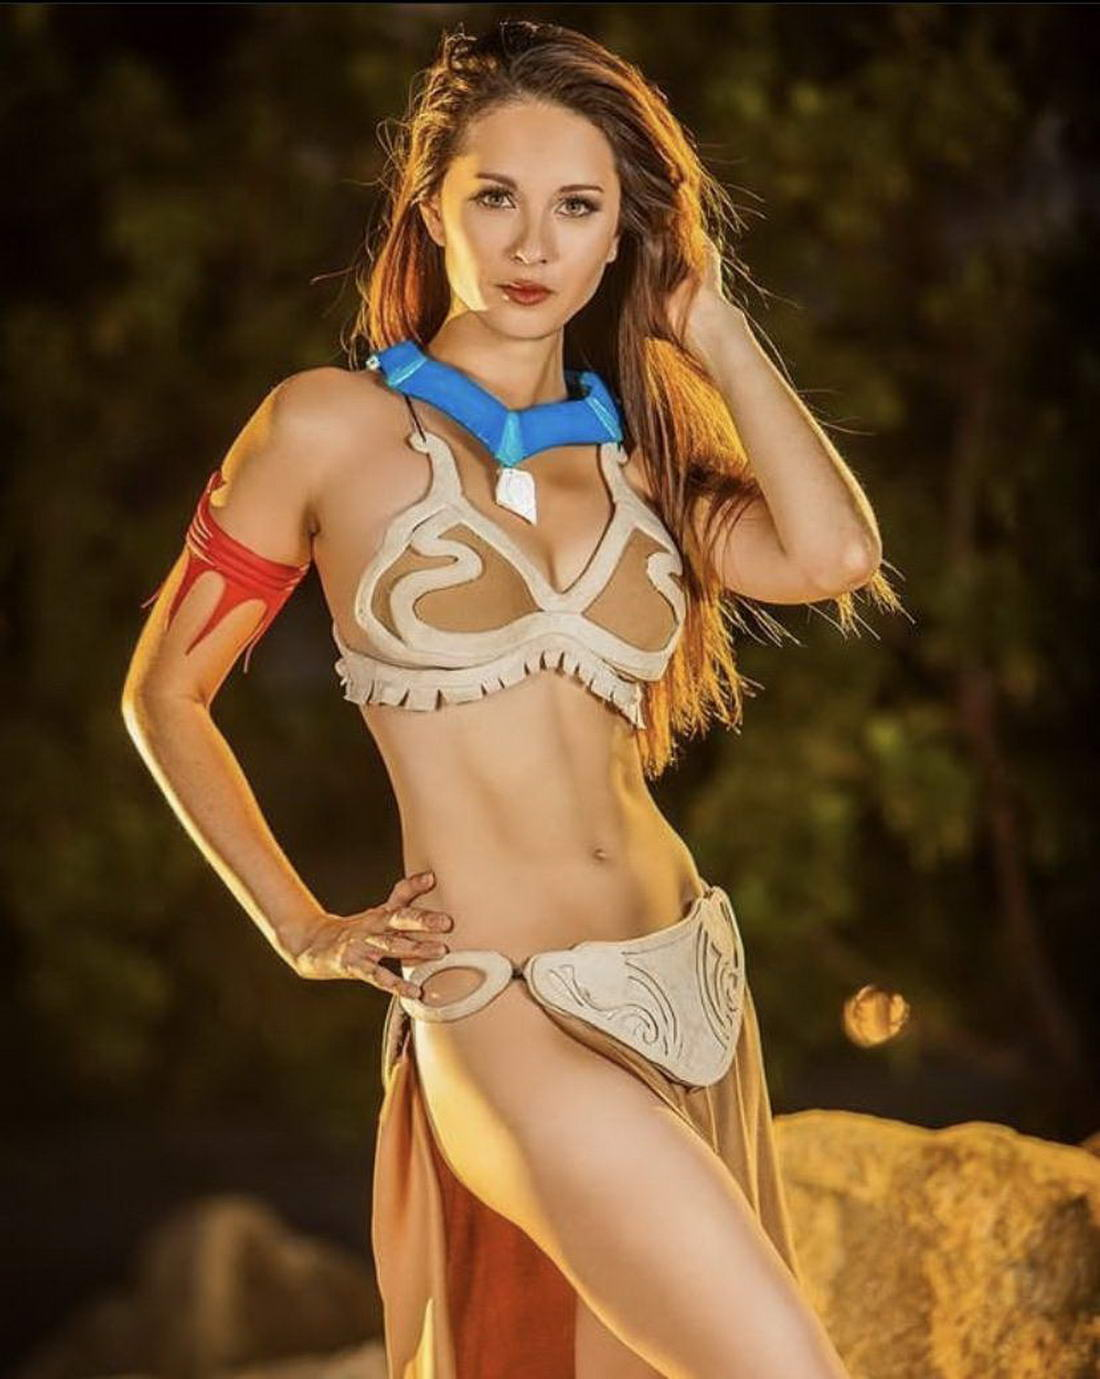 Hot Cosplay Girls Will Outshine Your Mind (41 Photos)